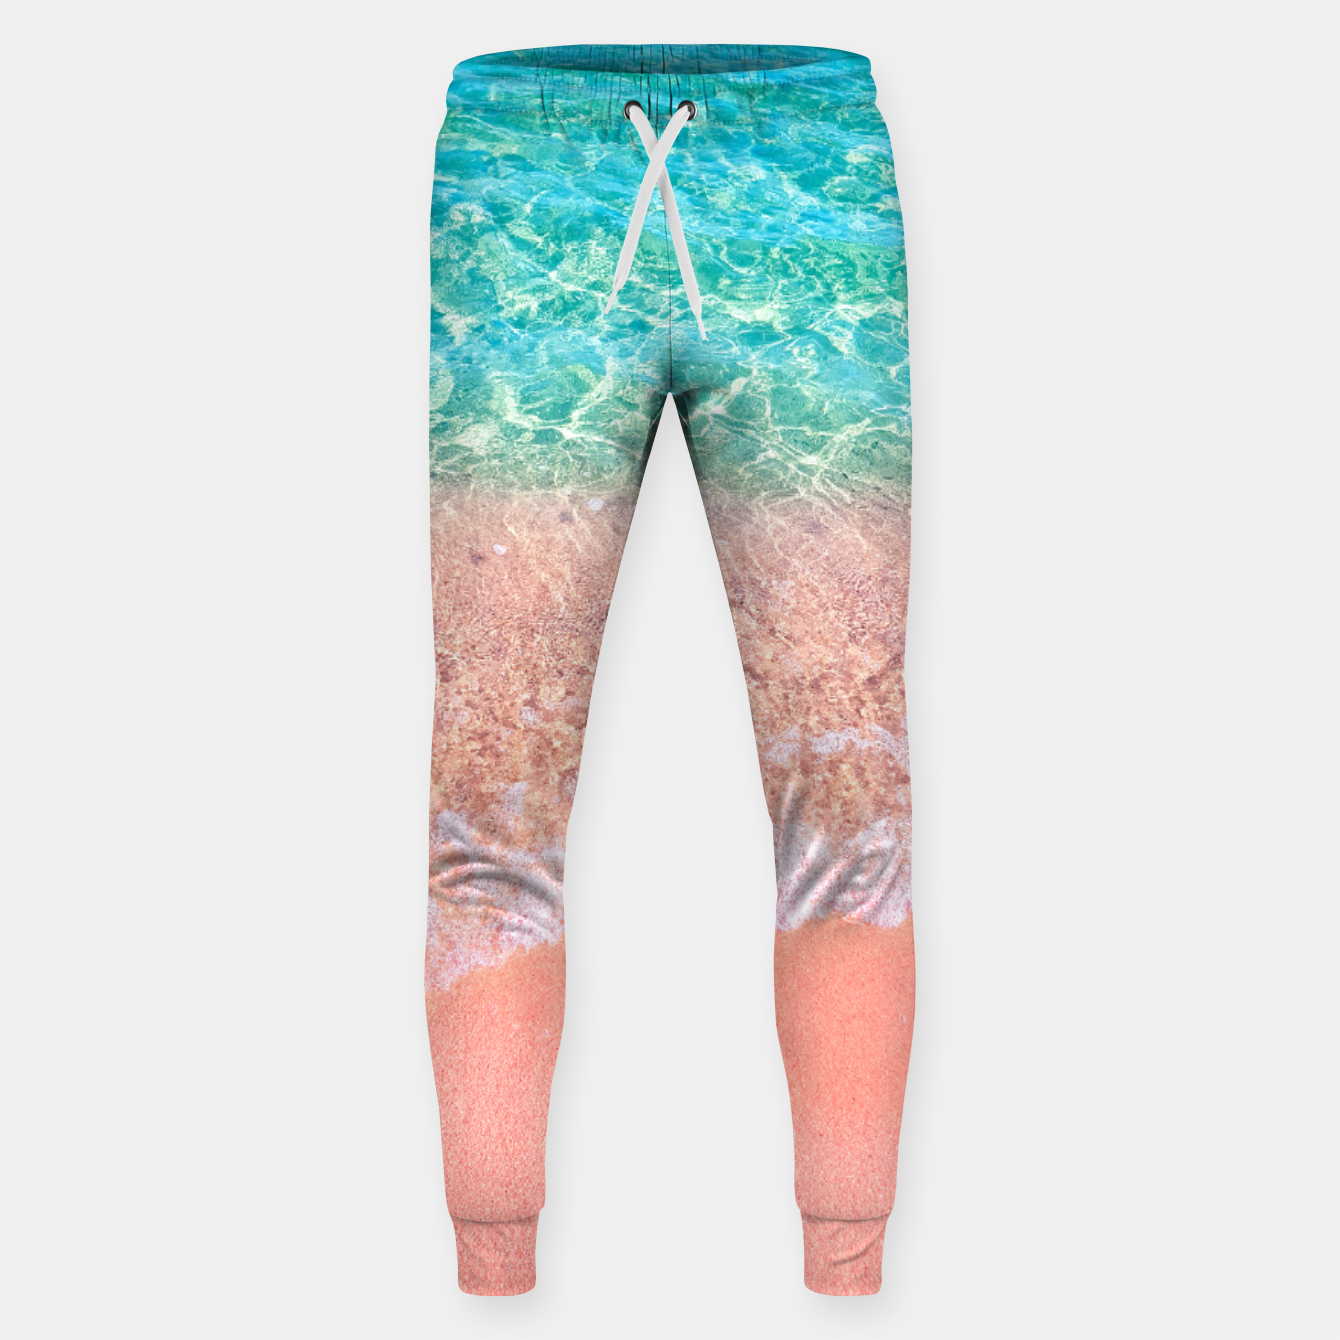 Image of Dreamy seaside photography, water and sand in magical colors Sweatpants - Live Heroes